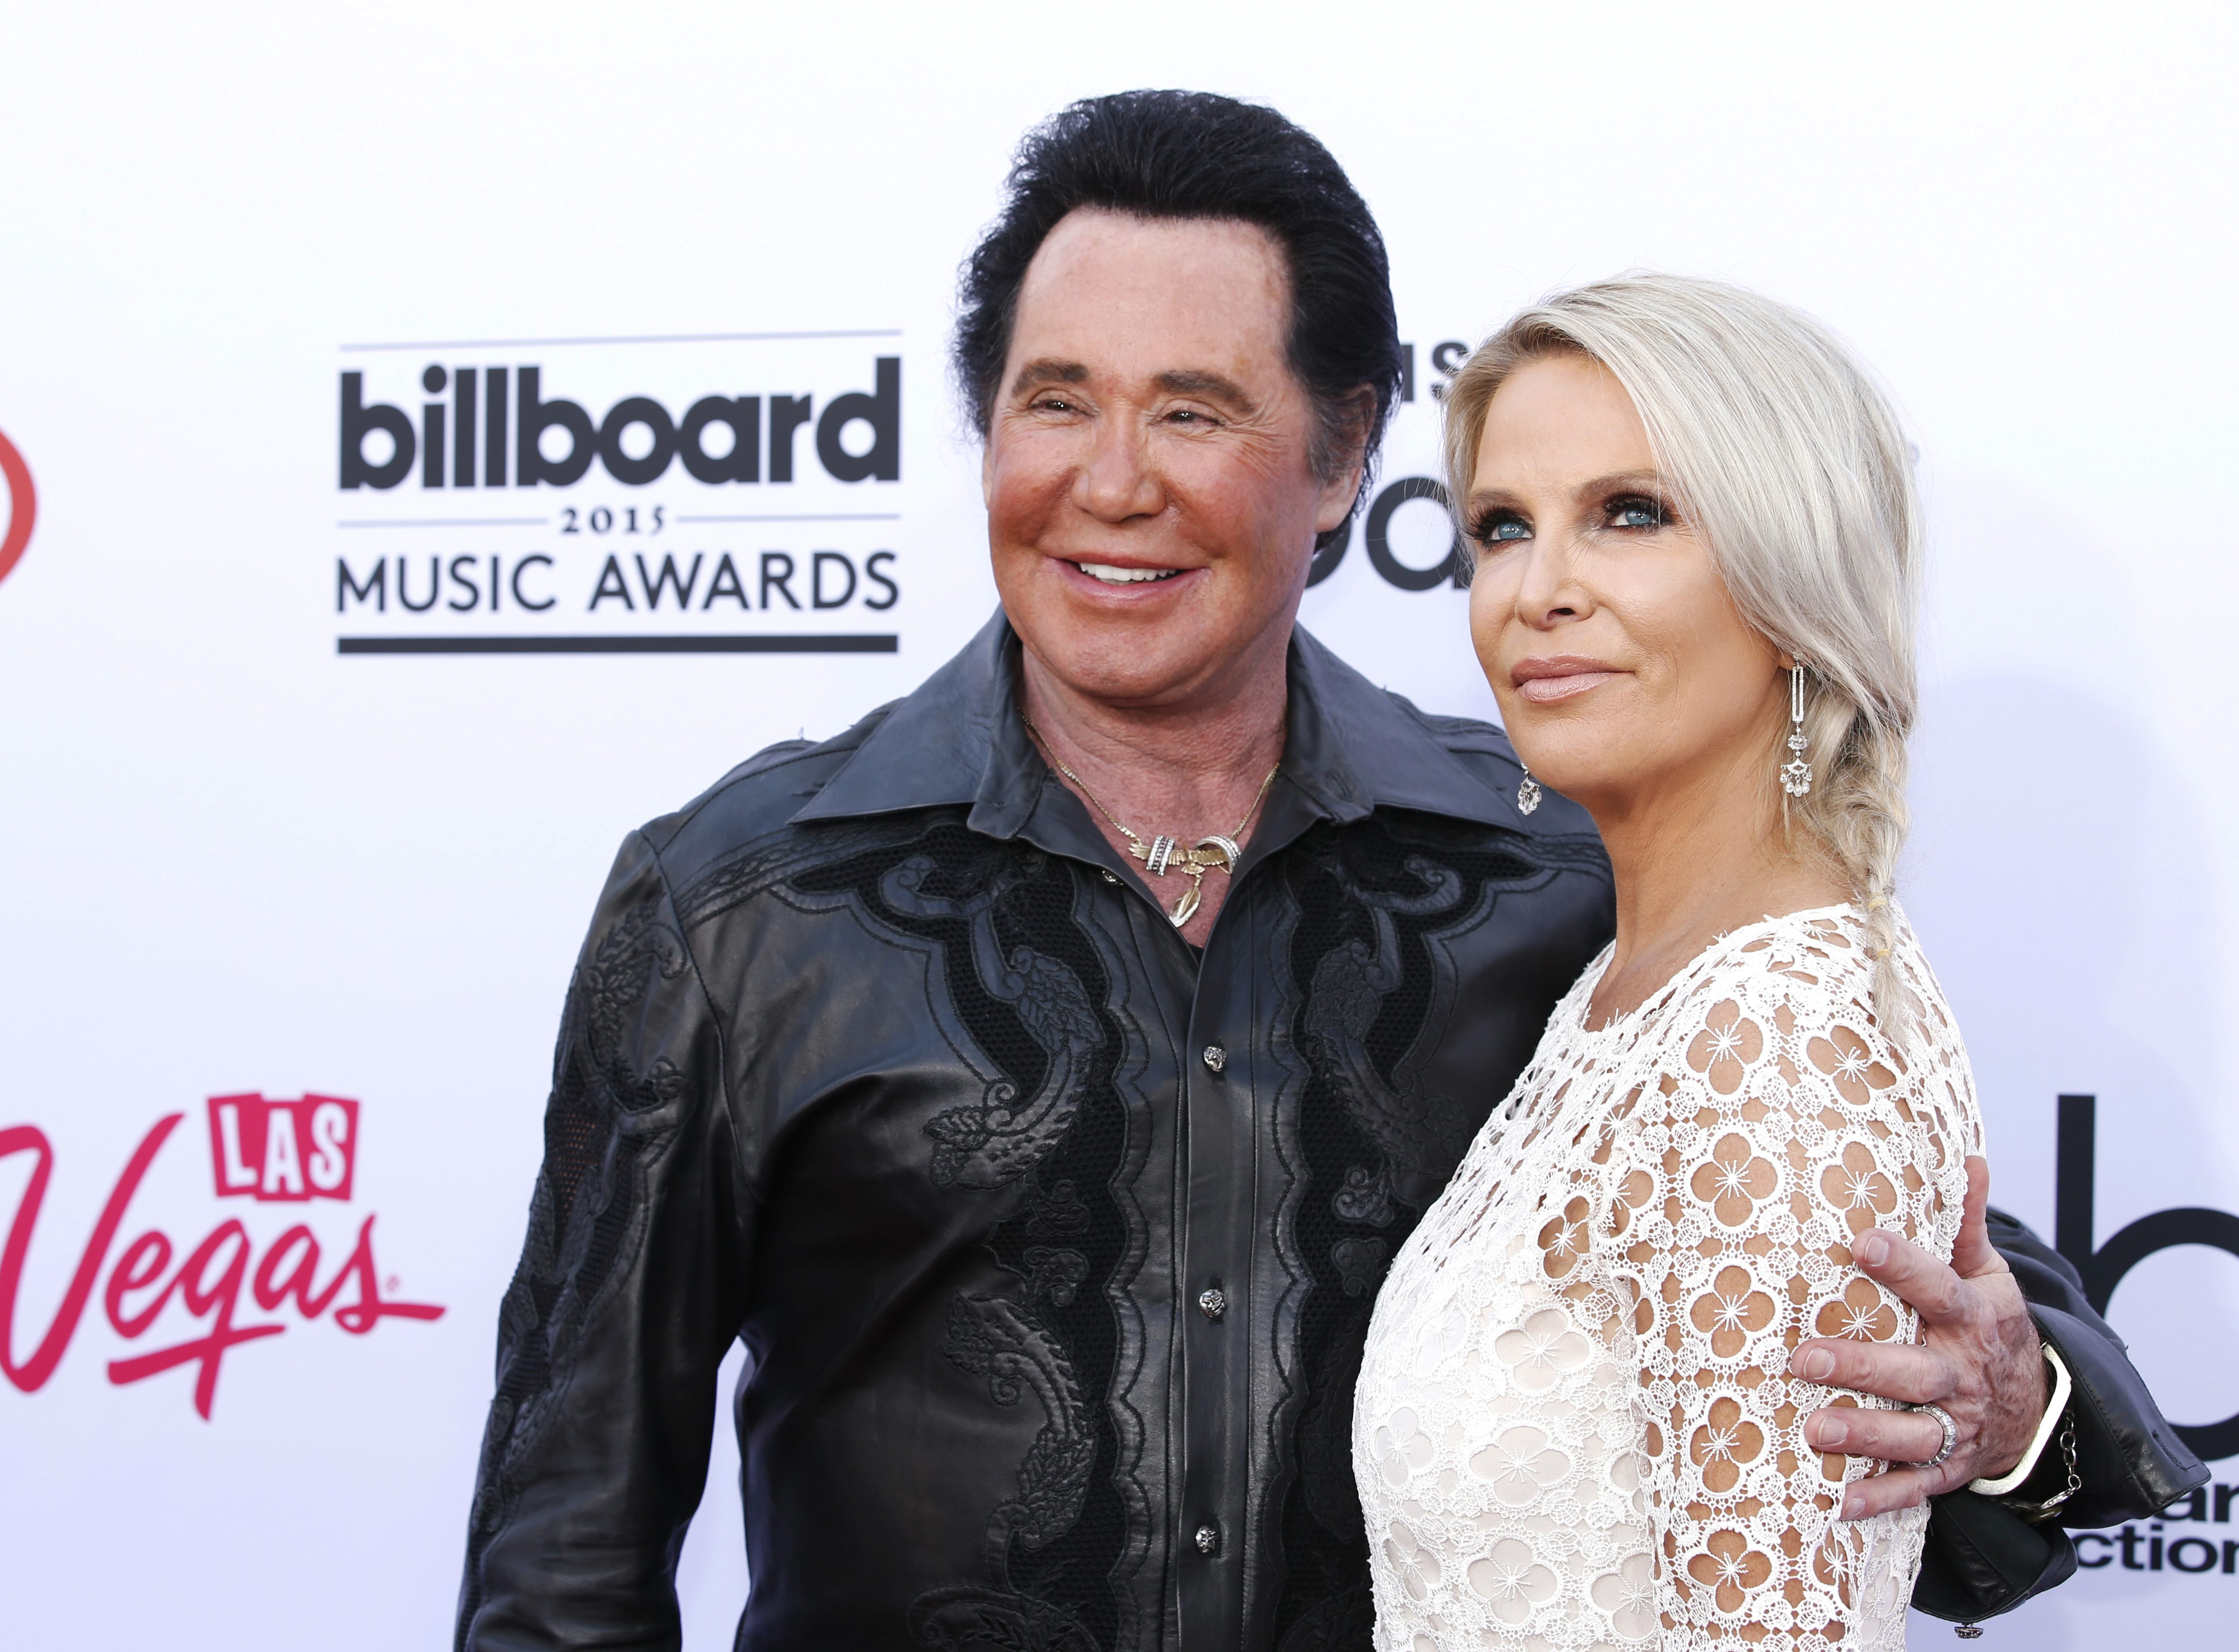 In this May 17, 2015 file photo, Wayne Newton and his wife, Kathleen McCrone, arrive at the Billboard Music Awards at the MGM Grand Garden Arena in Las Vegas.